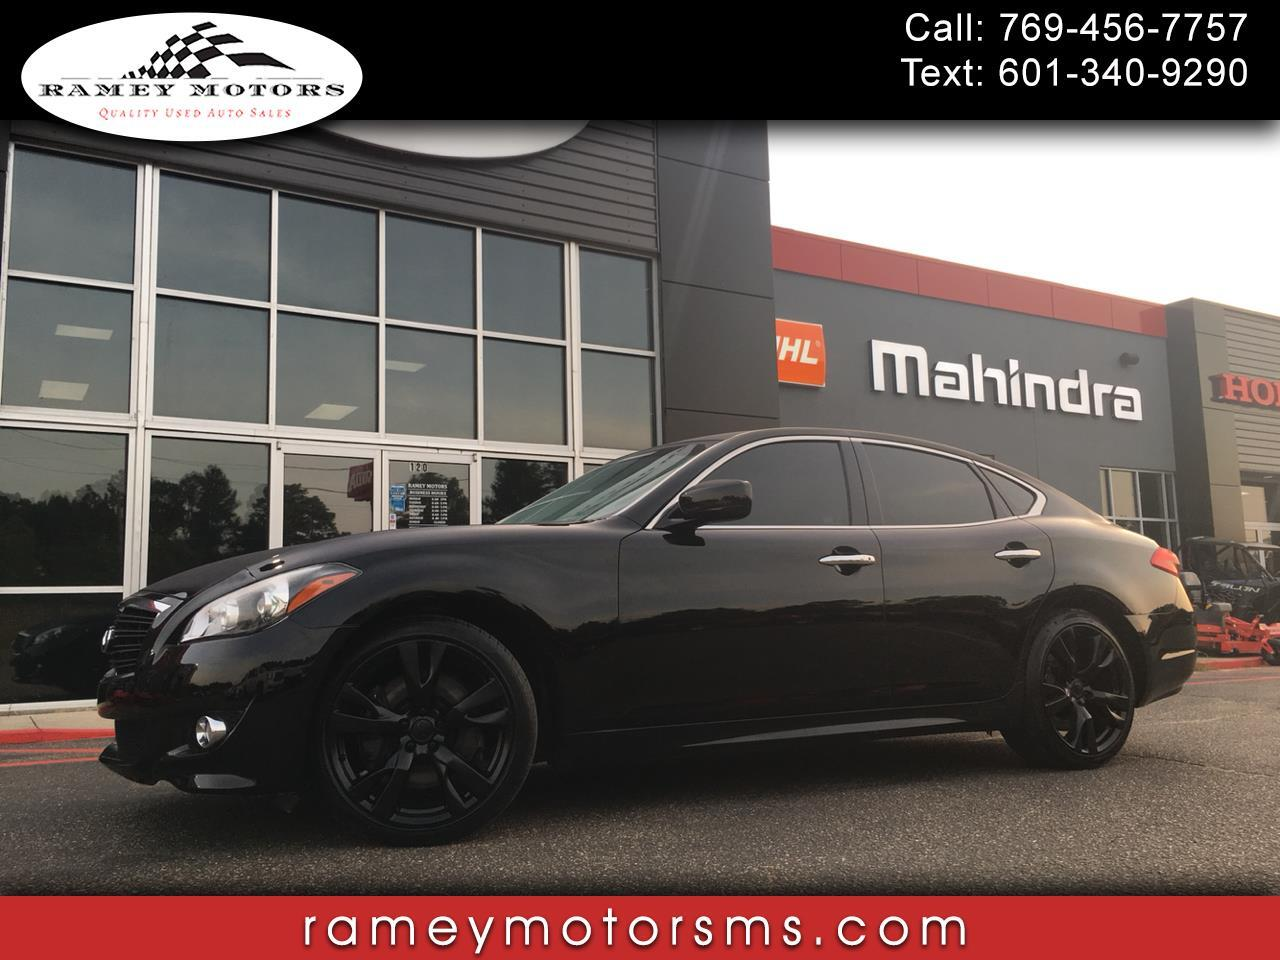 2012 Infiniti M37 SPORT TURBO EDITION